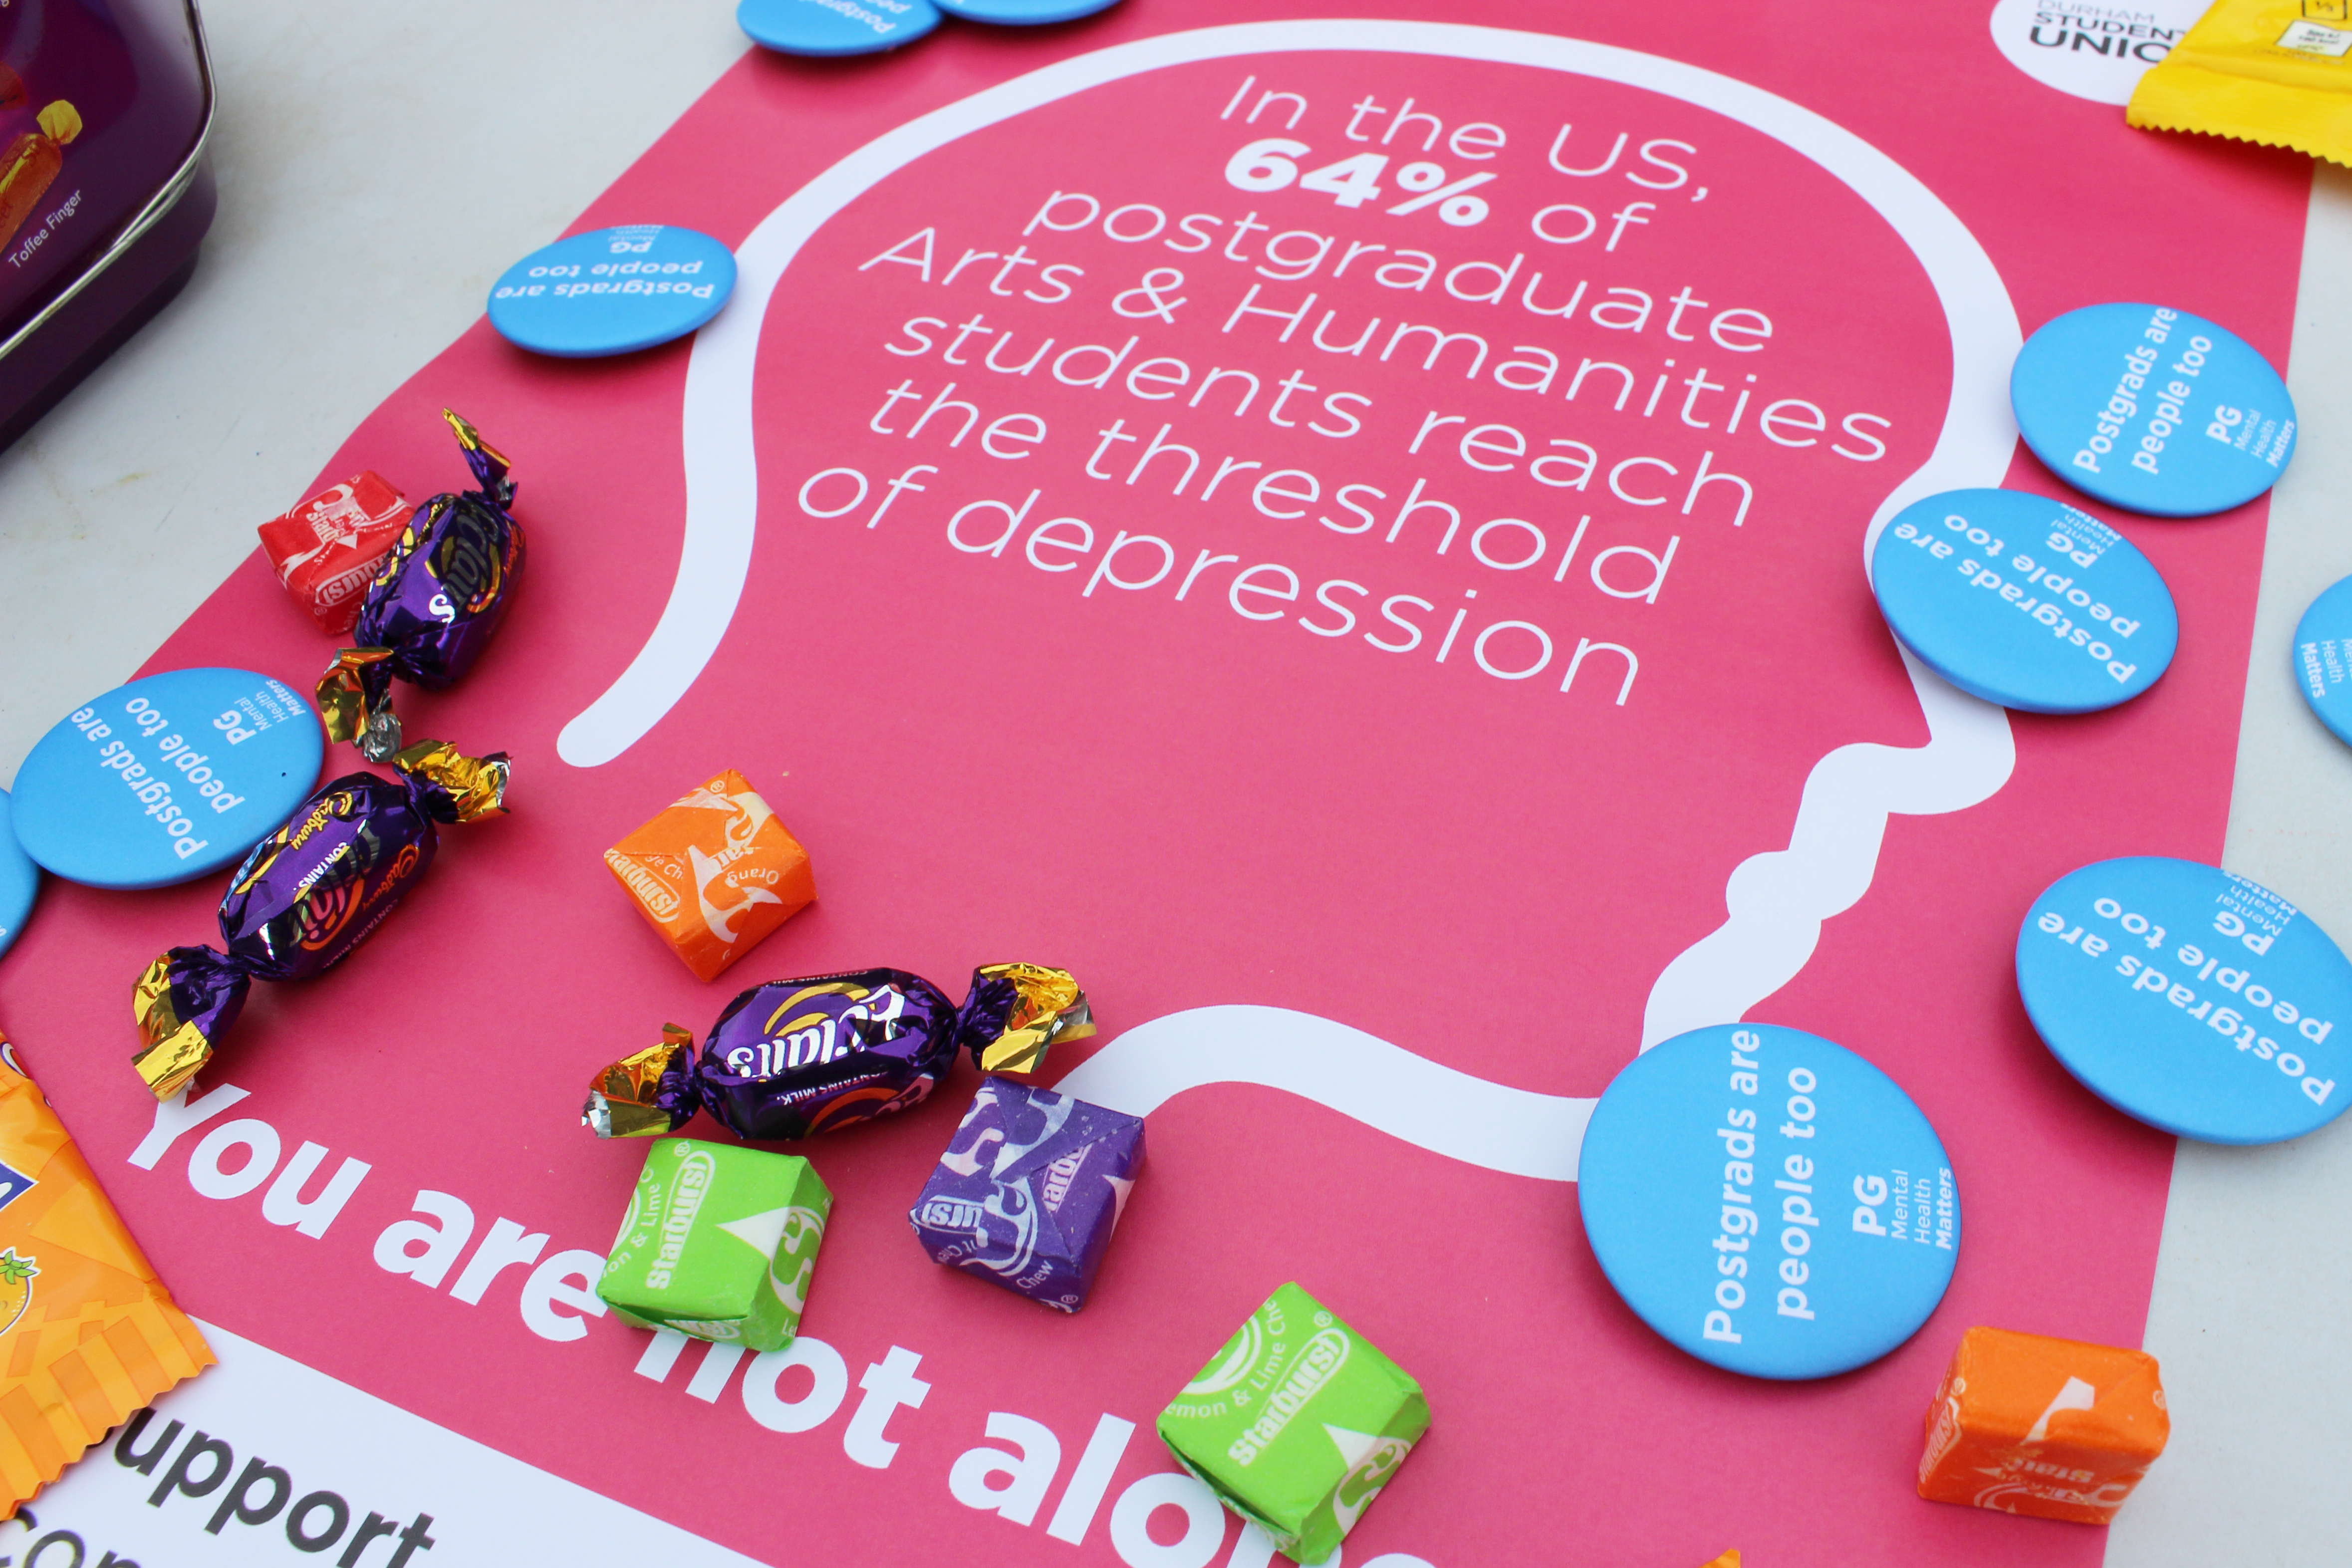 Mental health poster with badges and sweets